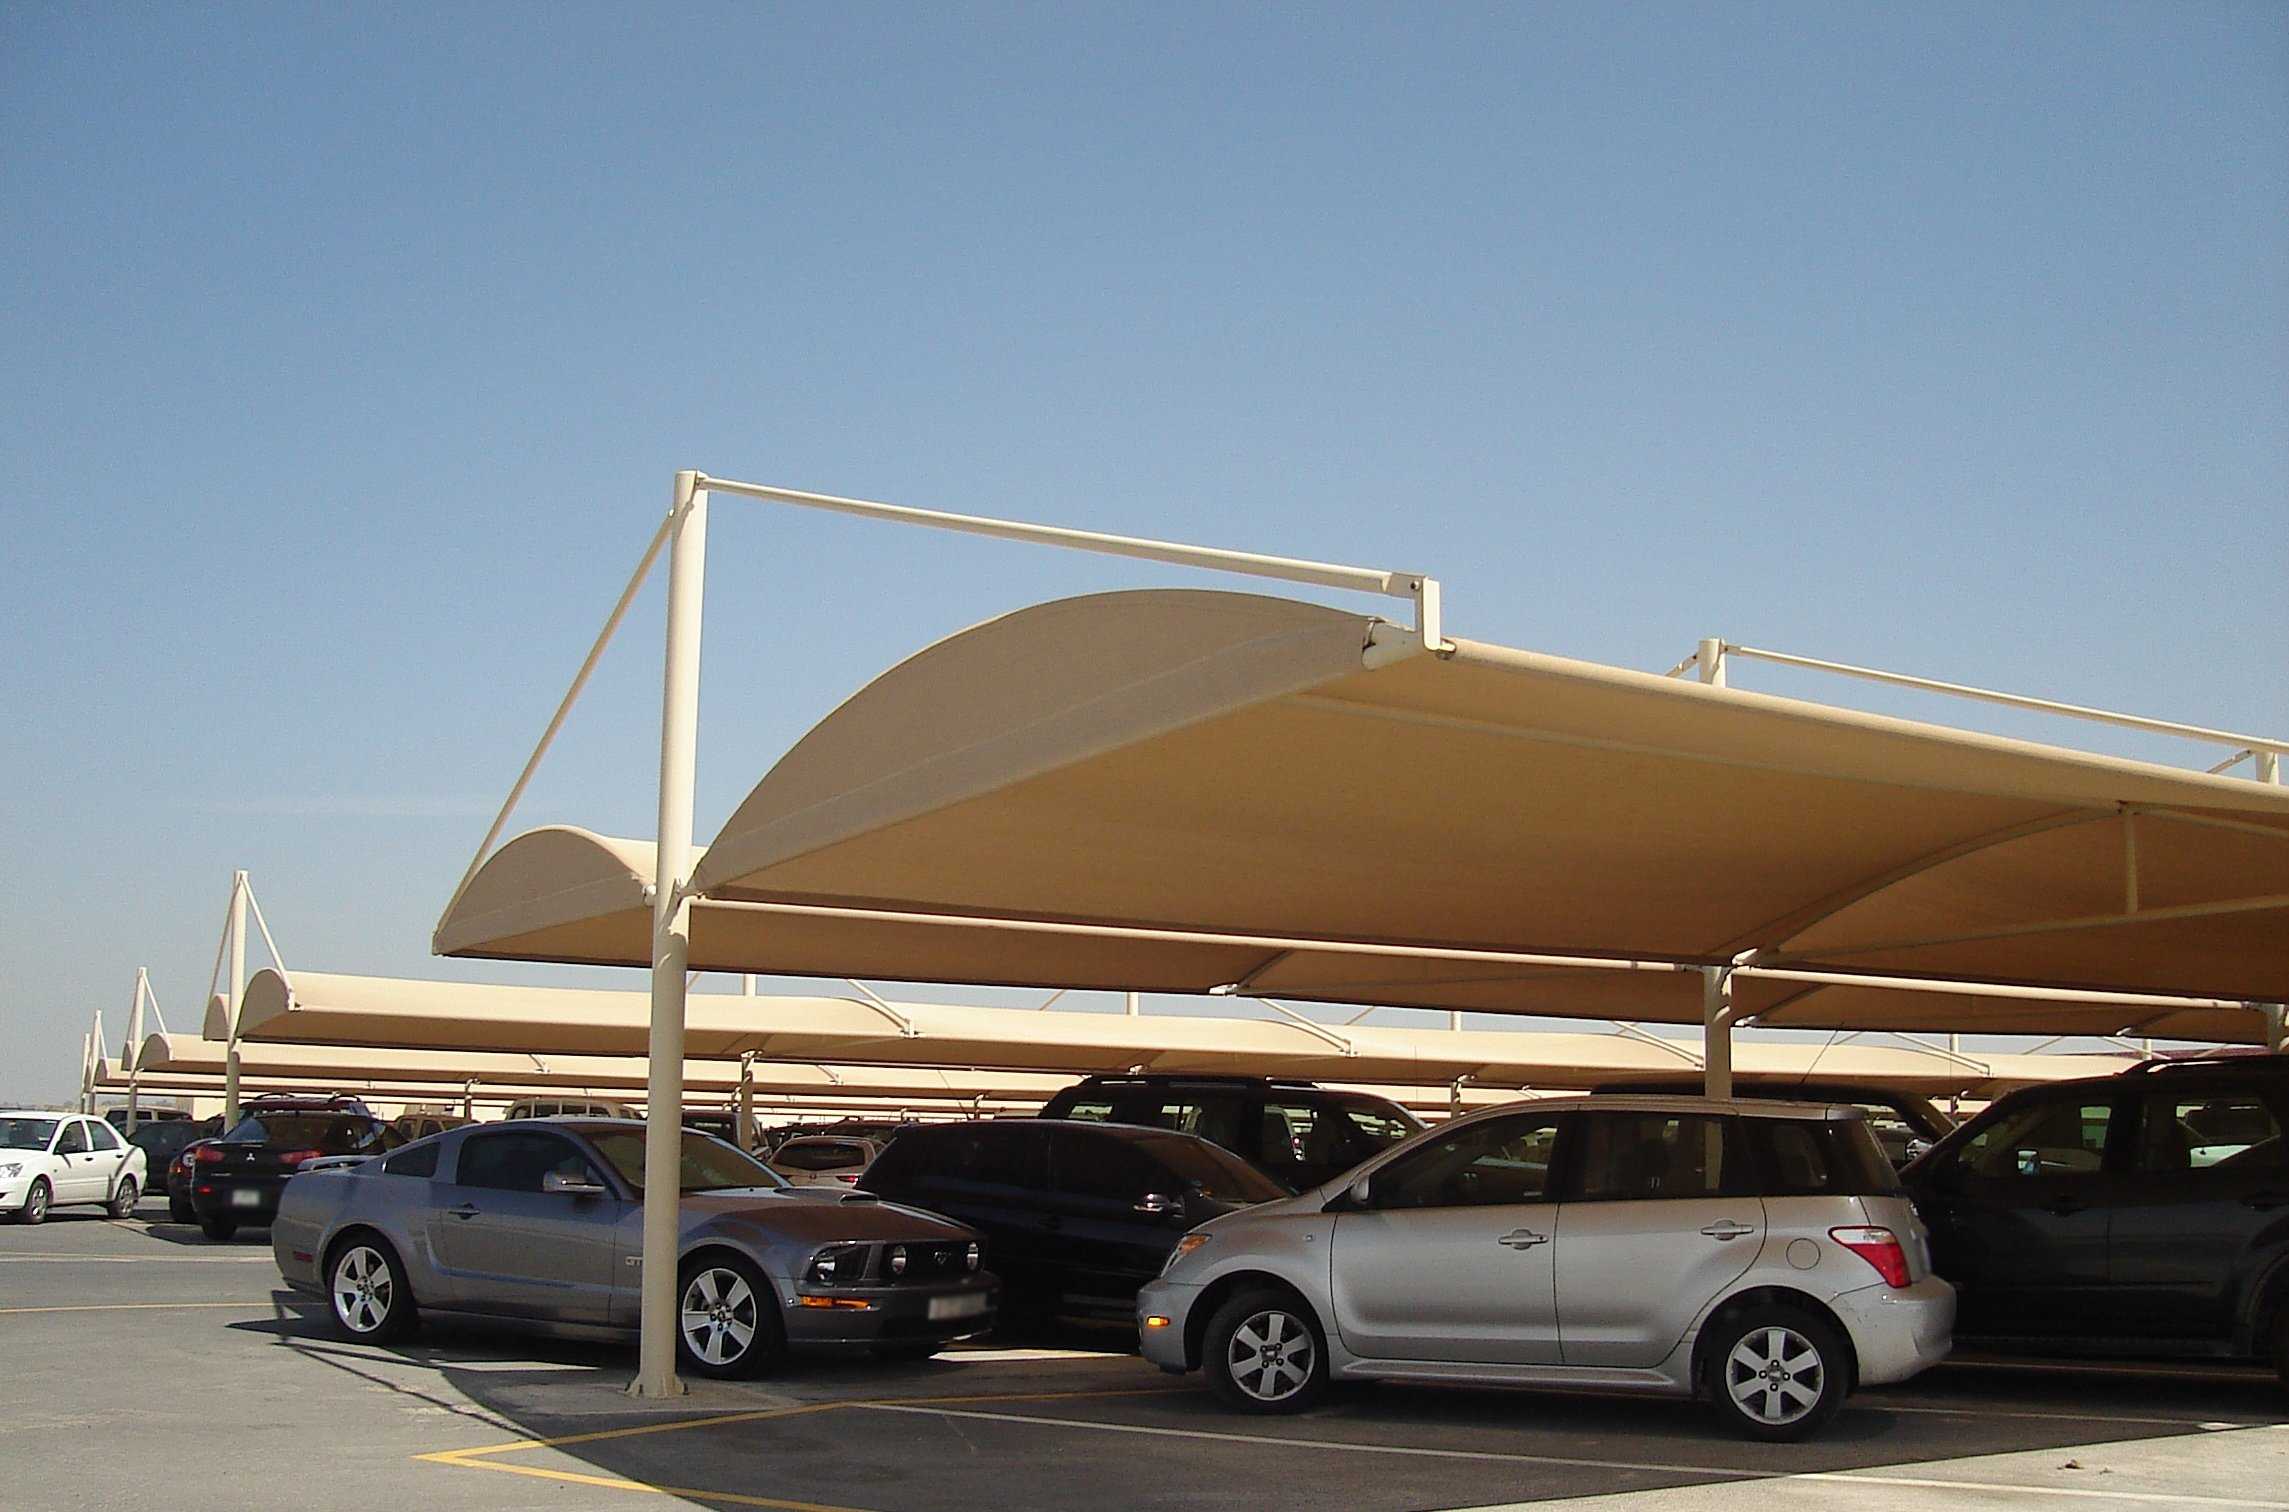 Parking Shade Suppliers: What To Look For When Hiring One